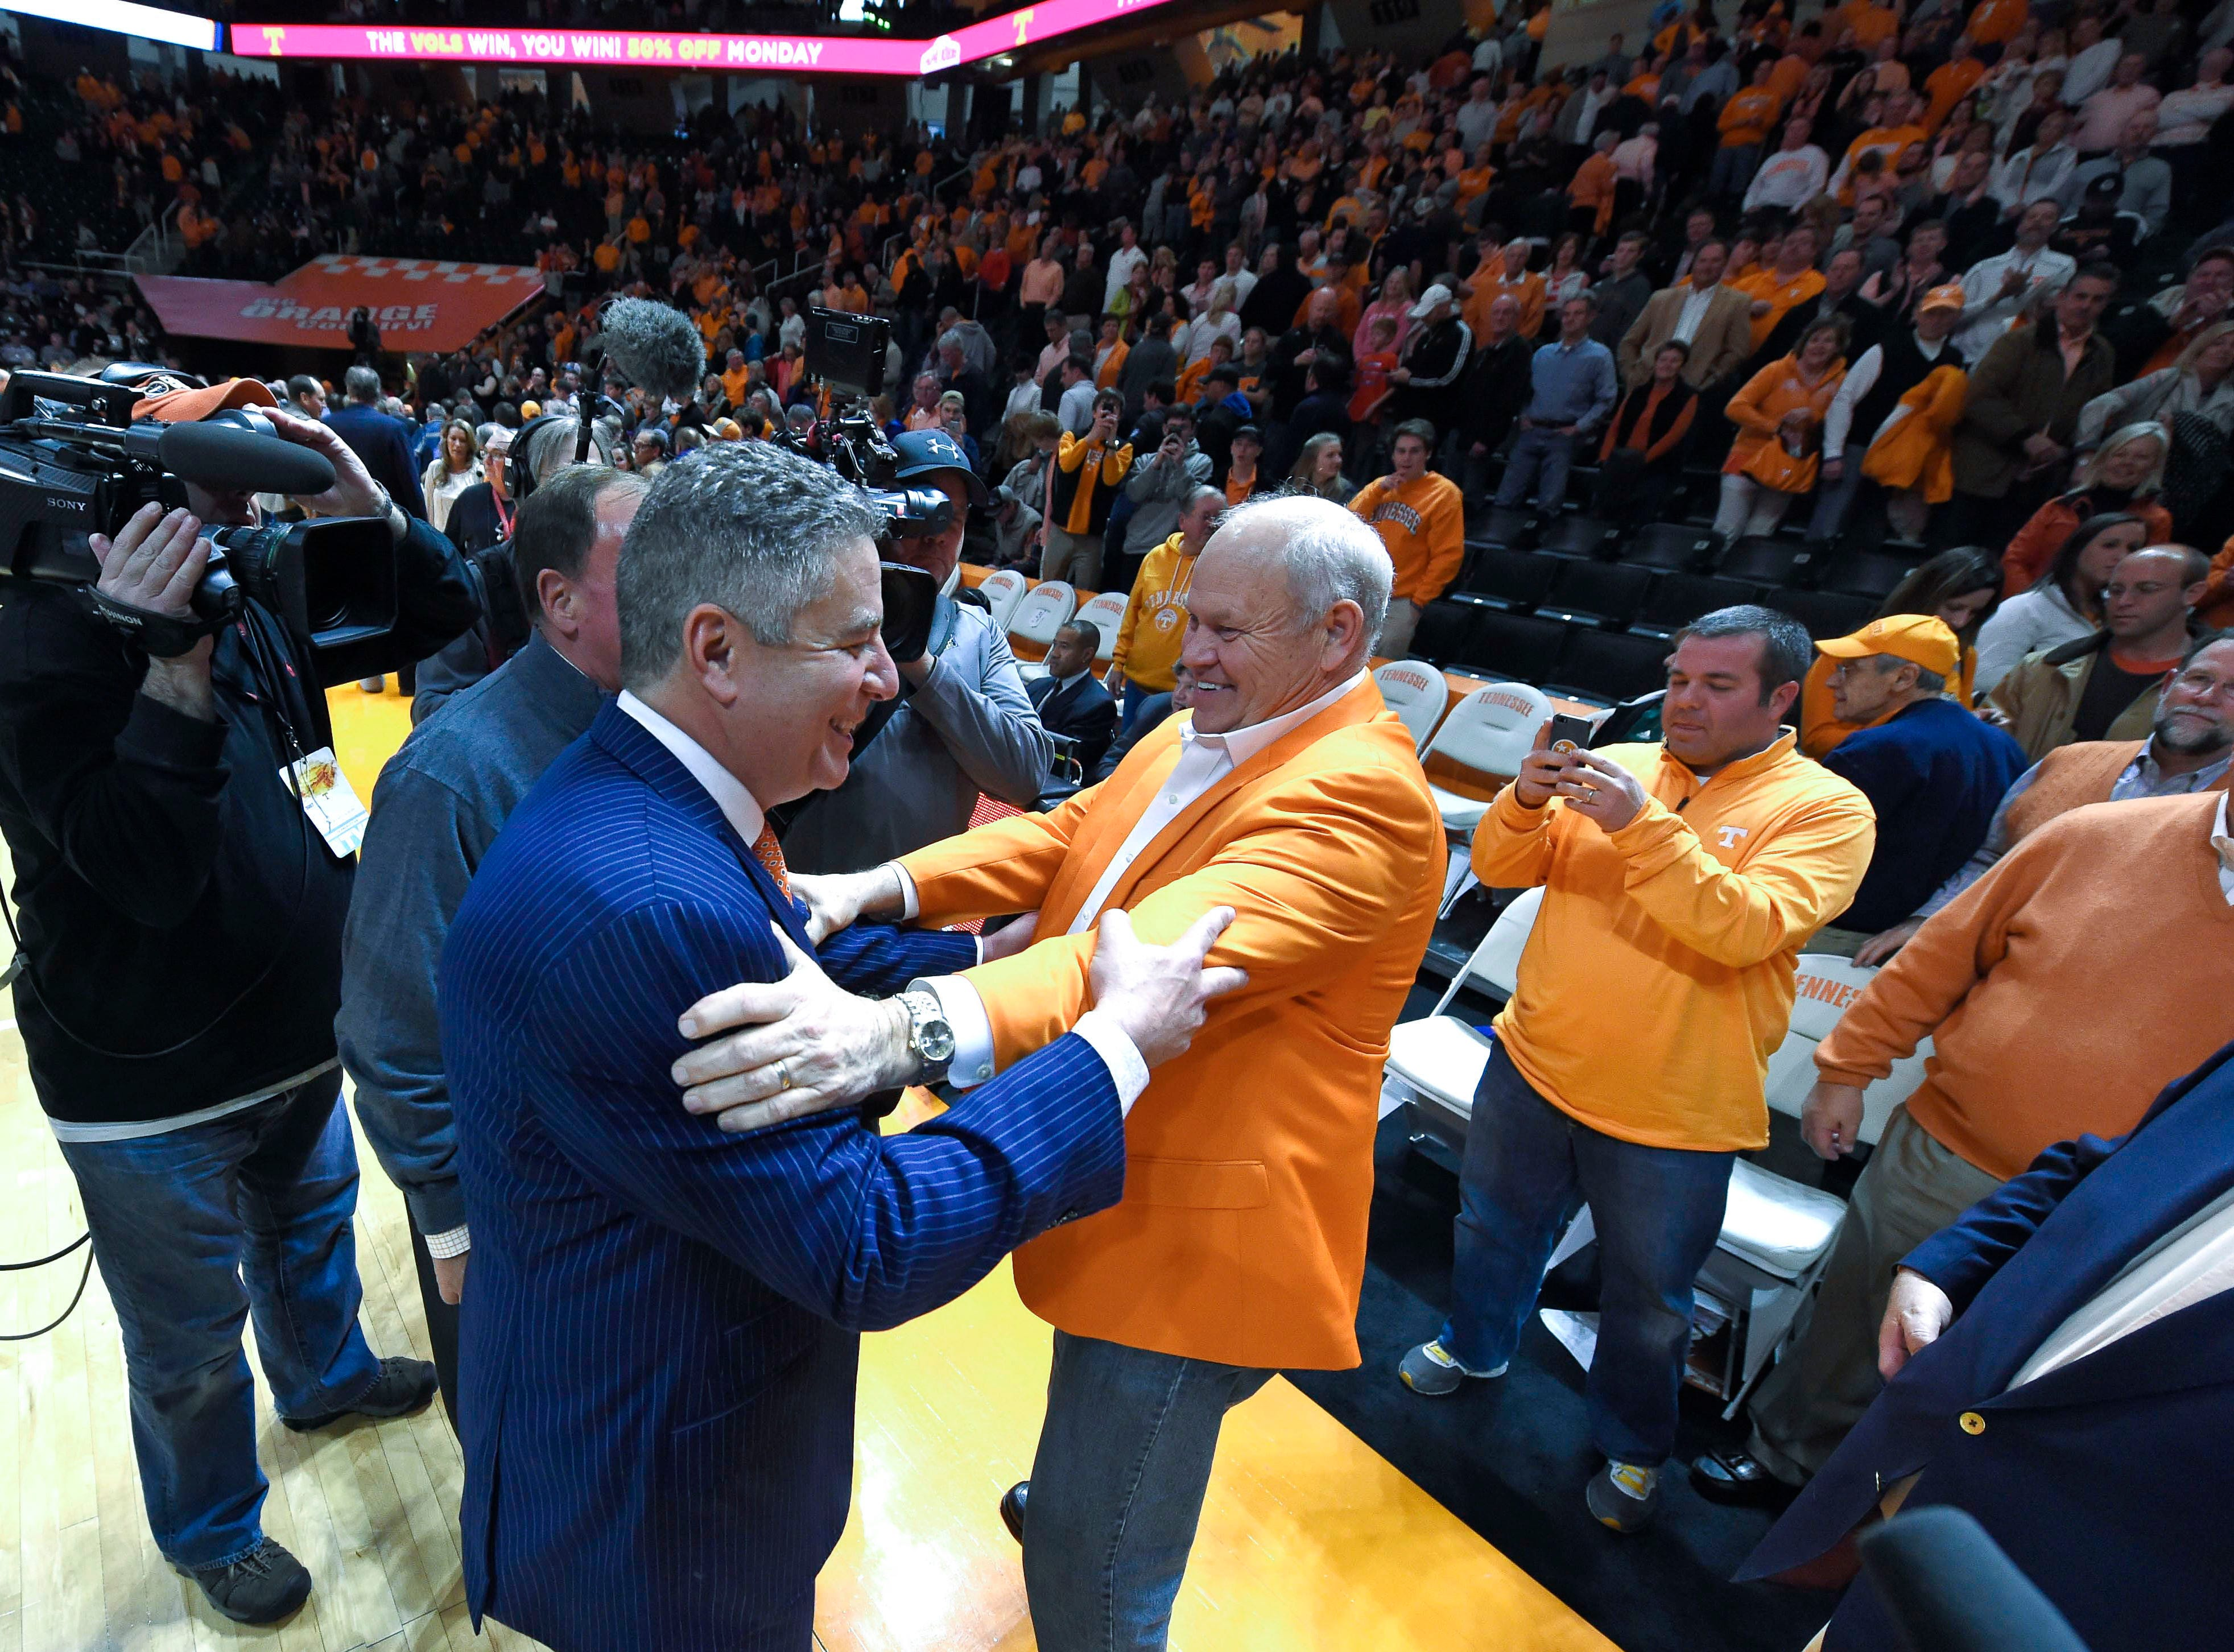 Auburn head coach Bruce Pearl gets a hug from former Tennessee football head coach Phillip Fulmer following Auburn's 71-63 loss to Tennessee at Thompson-Boling Arena in Knoxville on Saturday, Jan. 31, 2015.